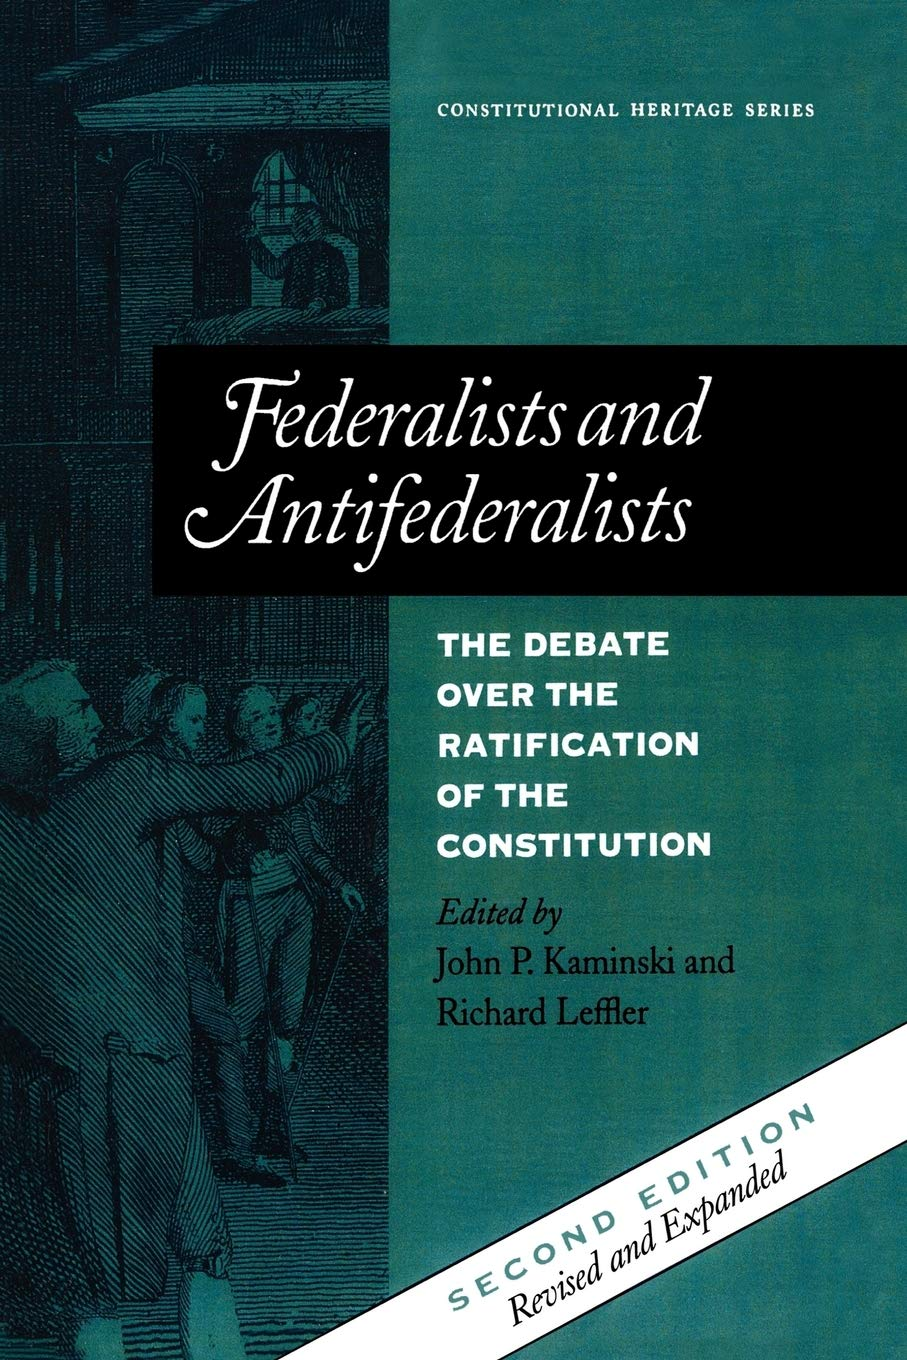 Federalists And Antifederalists: The Debate Over The Ratification Of The Constitution (Constitutional Heritage Series)